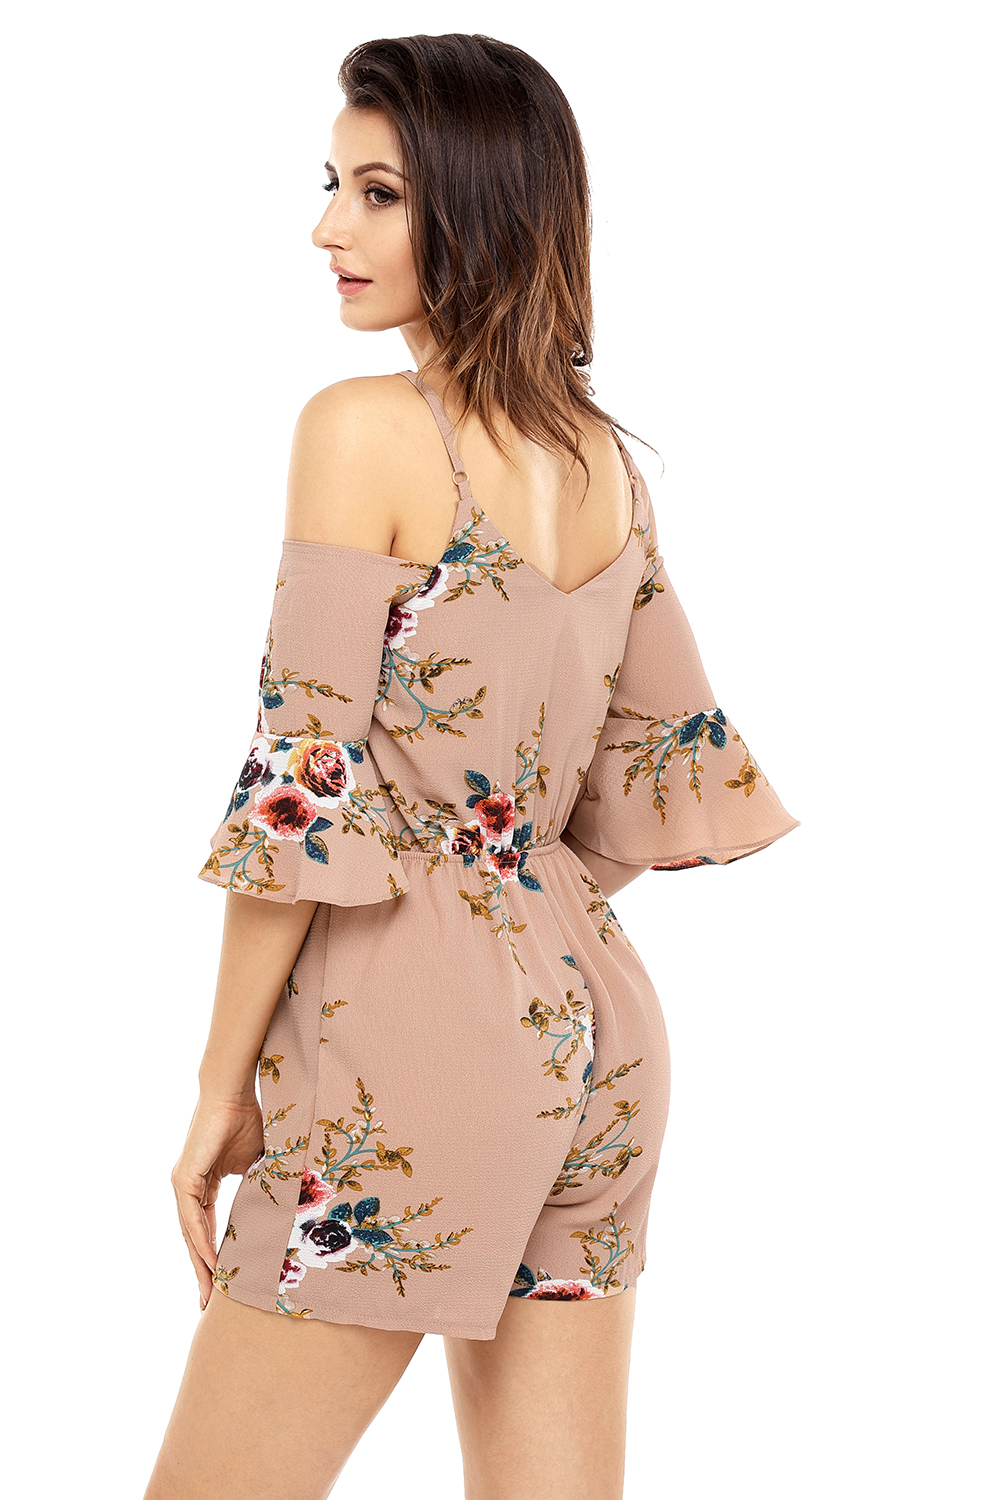 9c79aee312c Apricot multi floral ruffle wrap cold shoulder playsuit women high ...